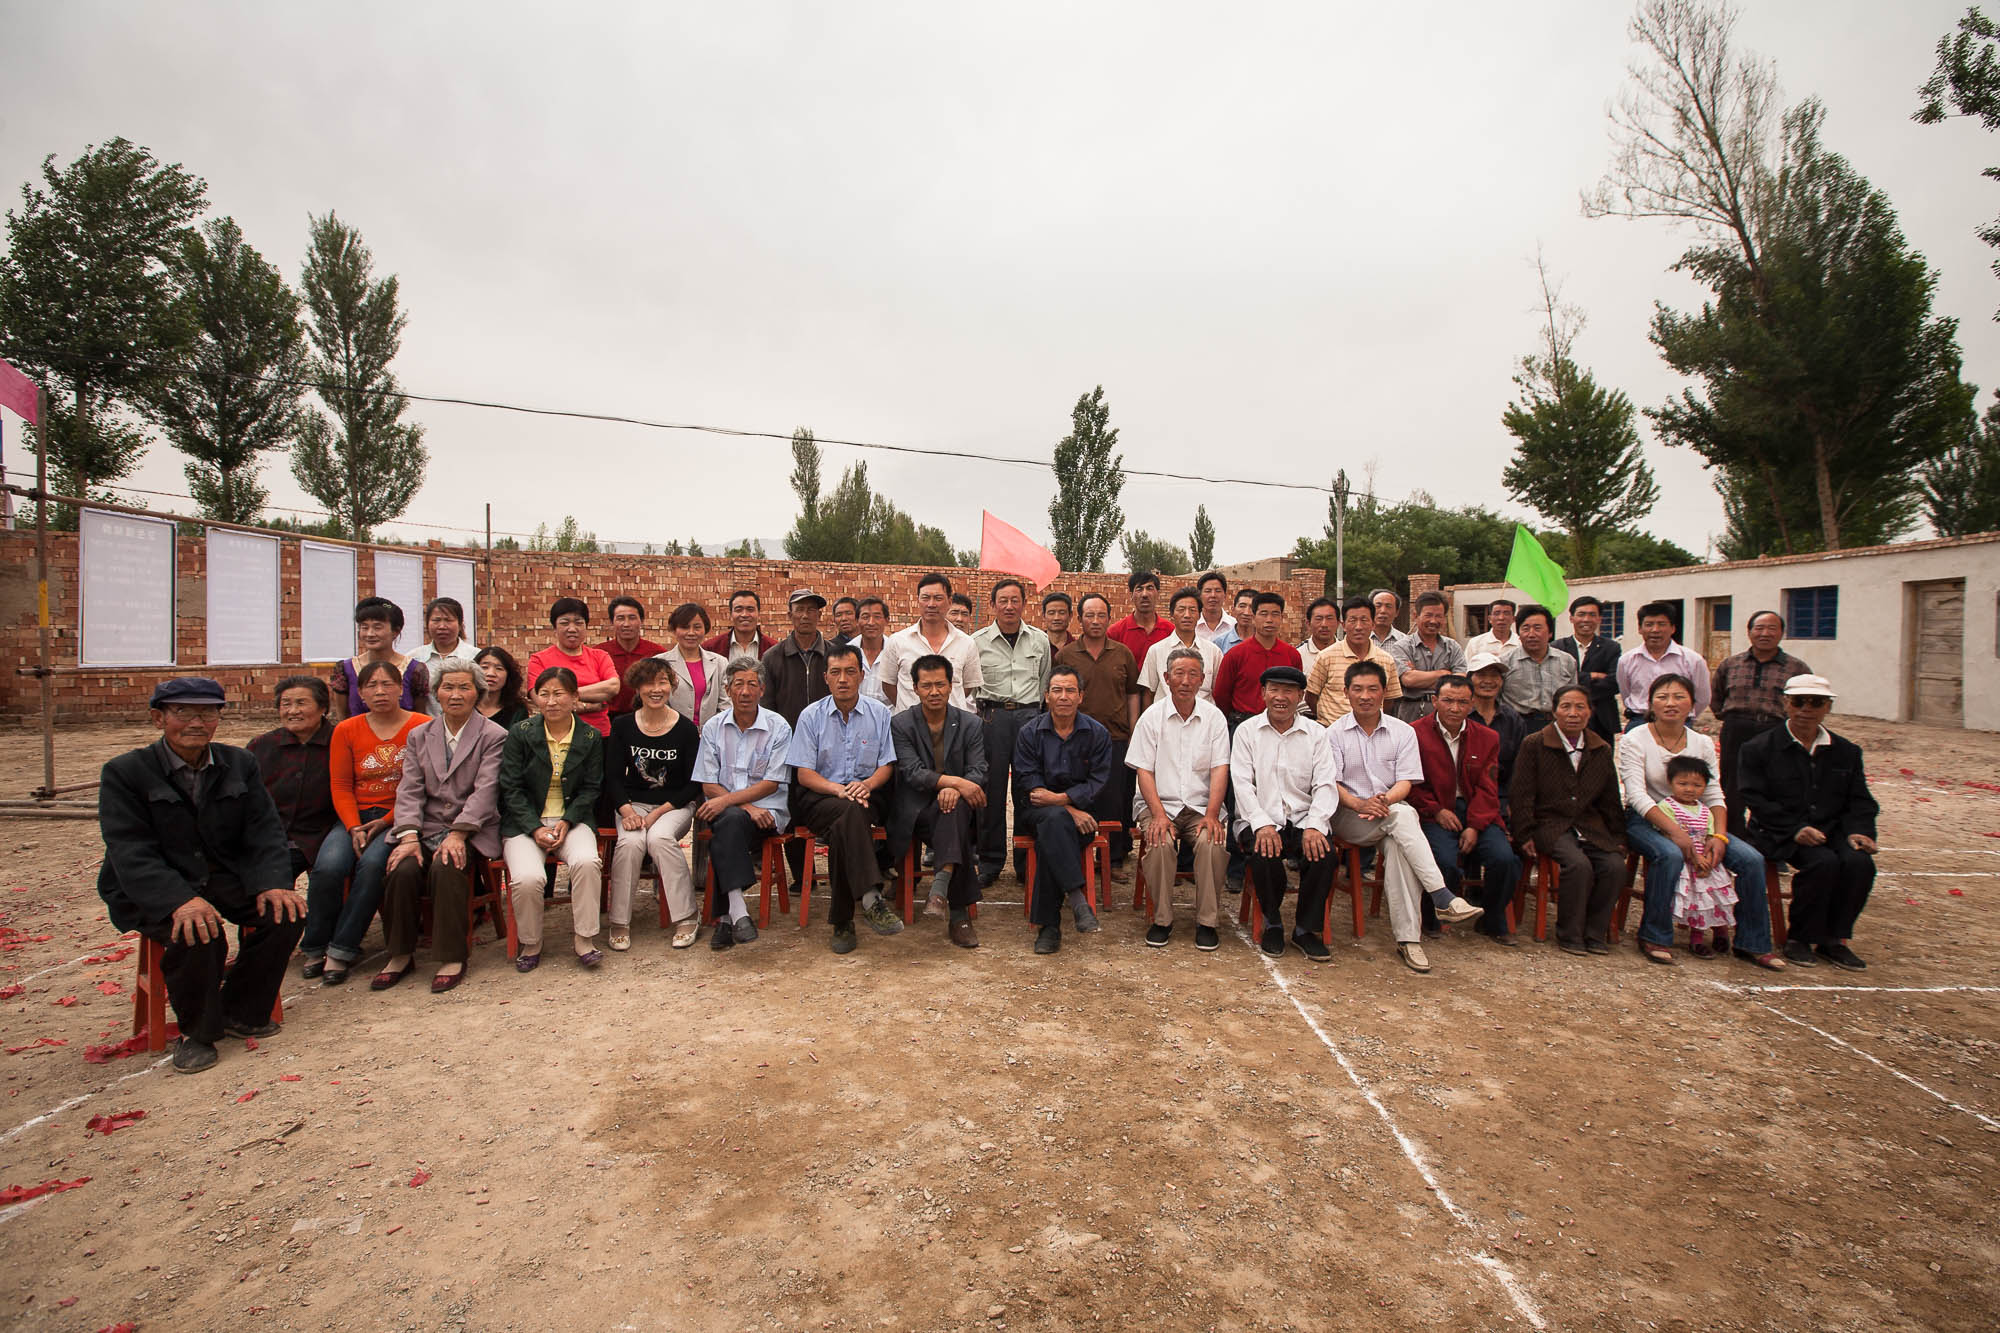 The villagers of Taipingpu invited me to attend an official building construction ceremony